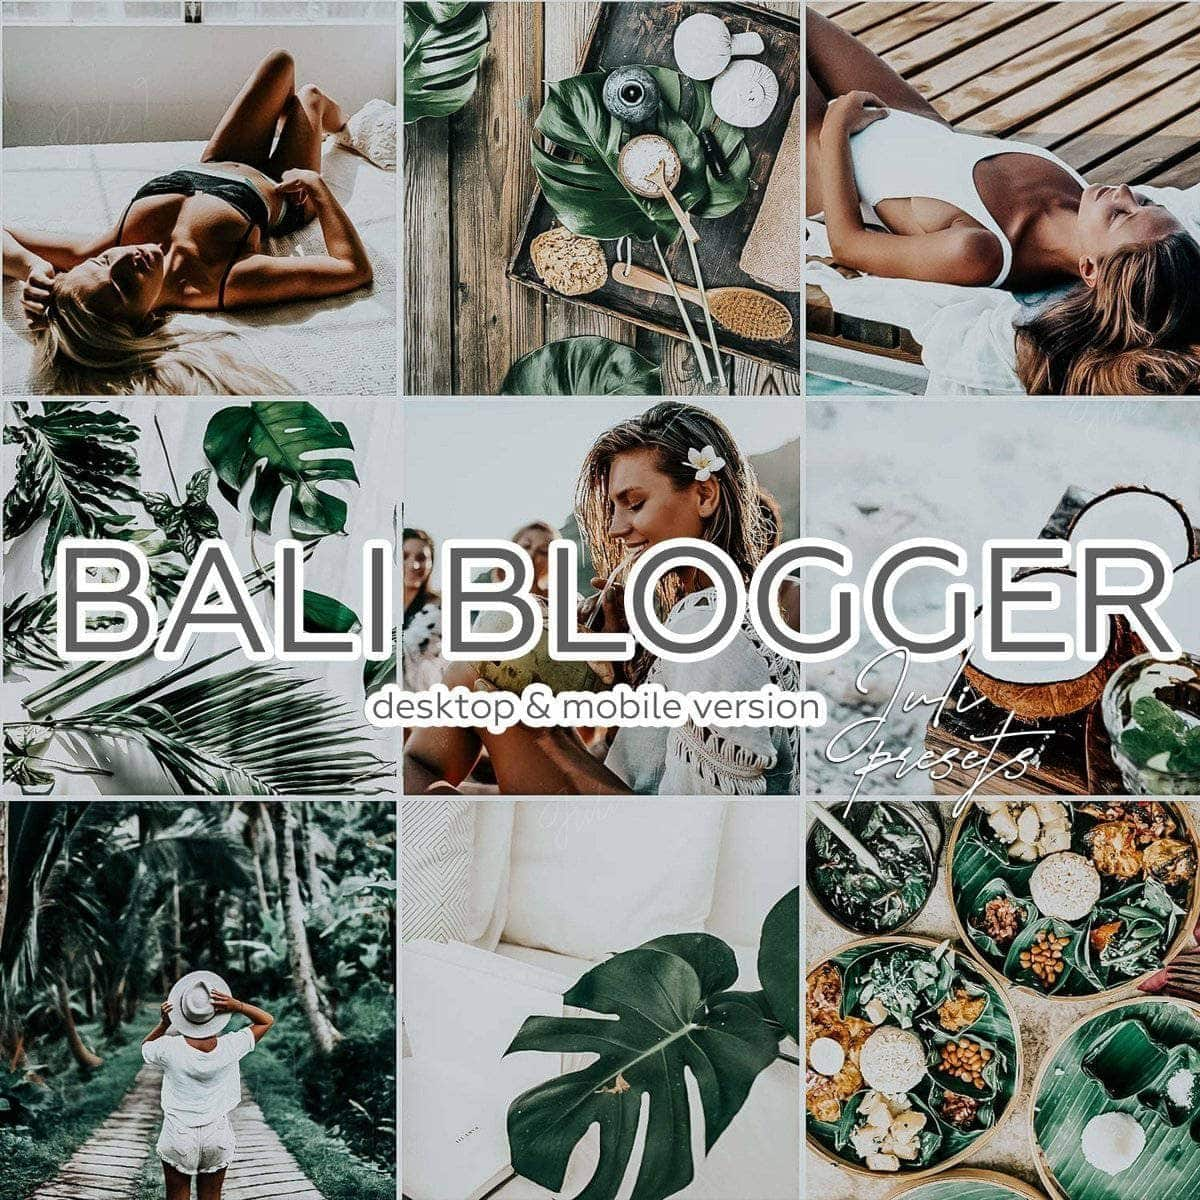 BALI BLOGGER - 5 Desktop Lightroom Presets - presetbank